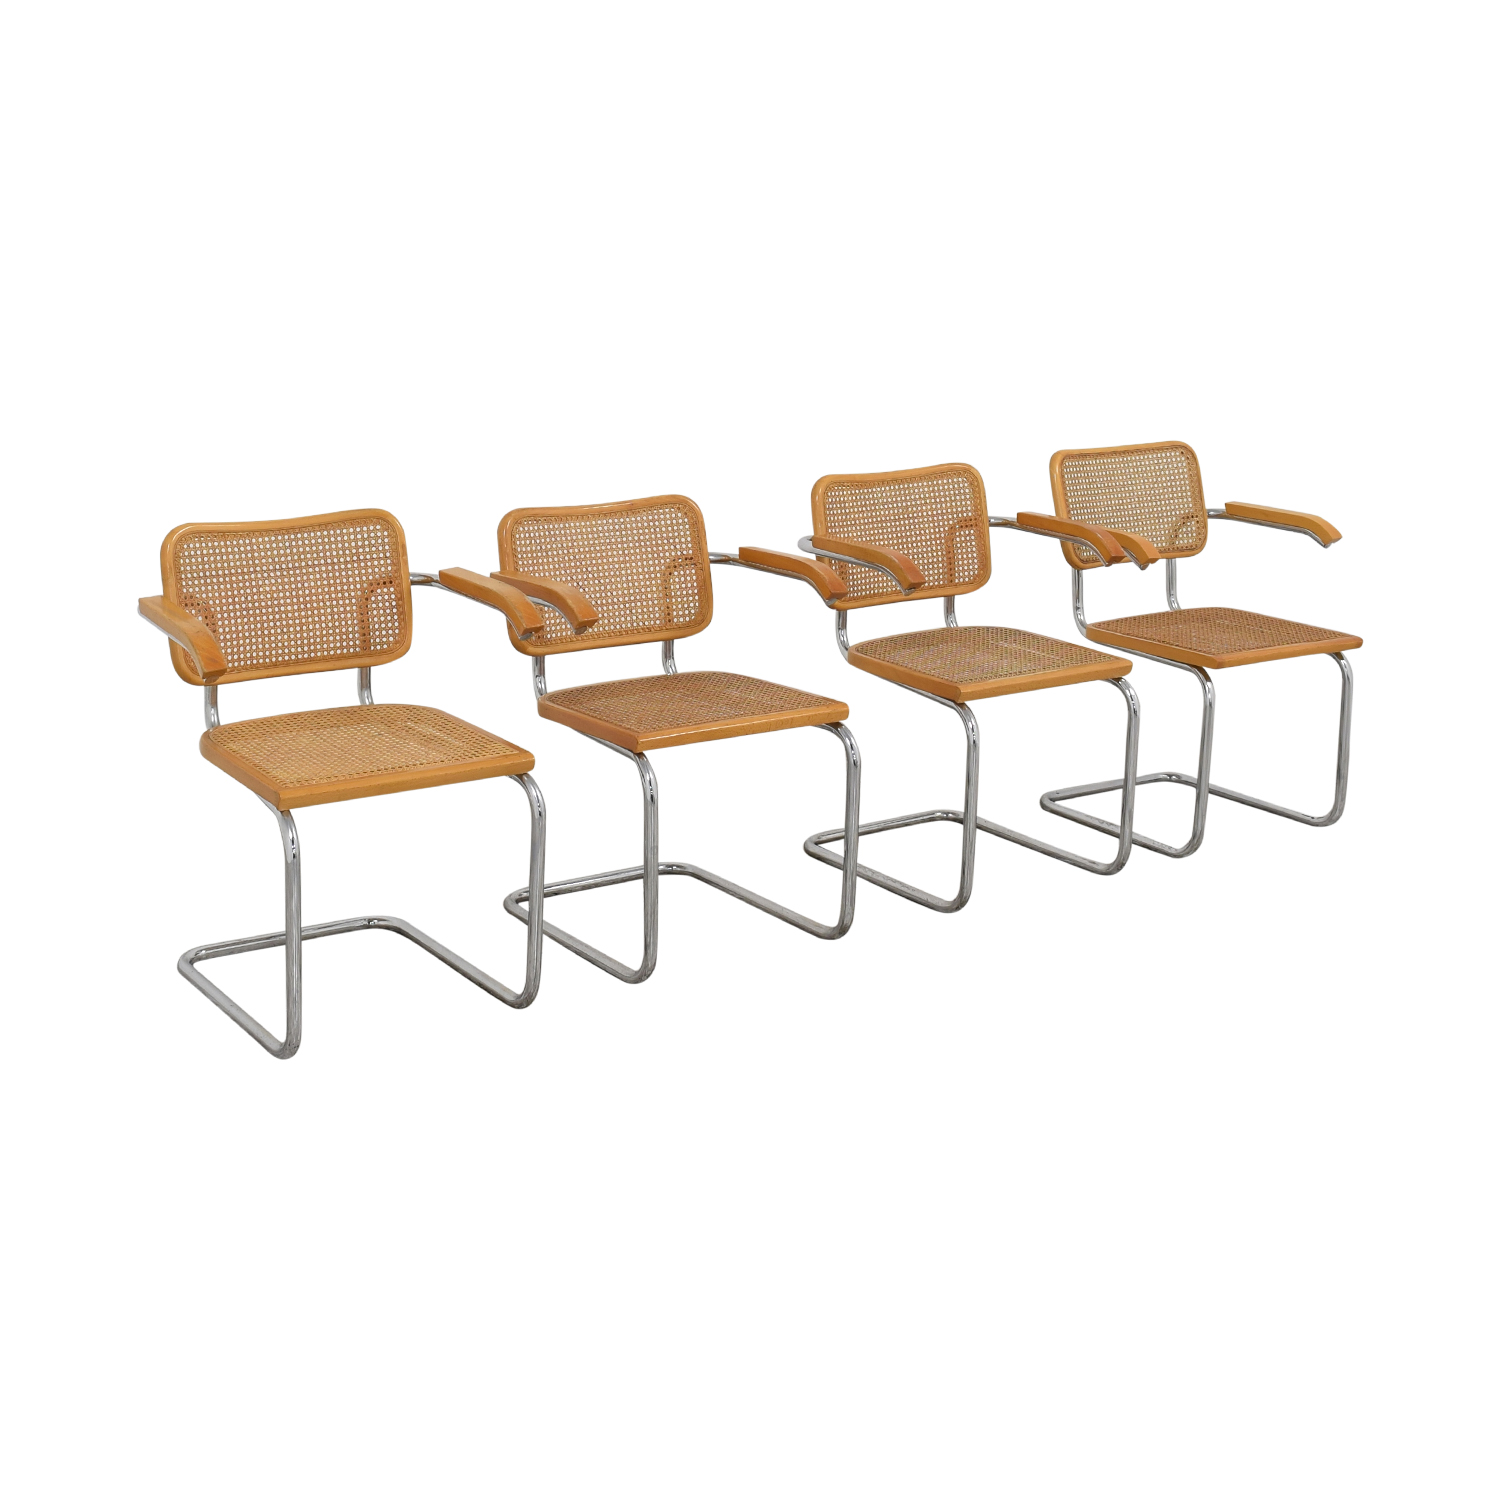 Scandinavian Designs Scandinavian Designs Bendt Dining Arm Chairs brown